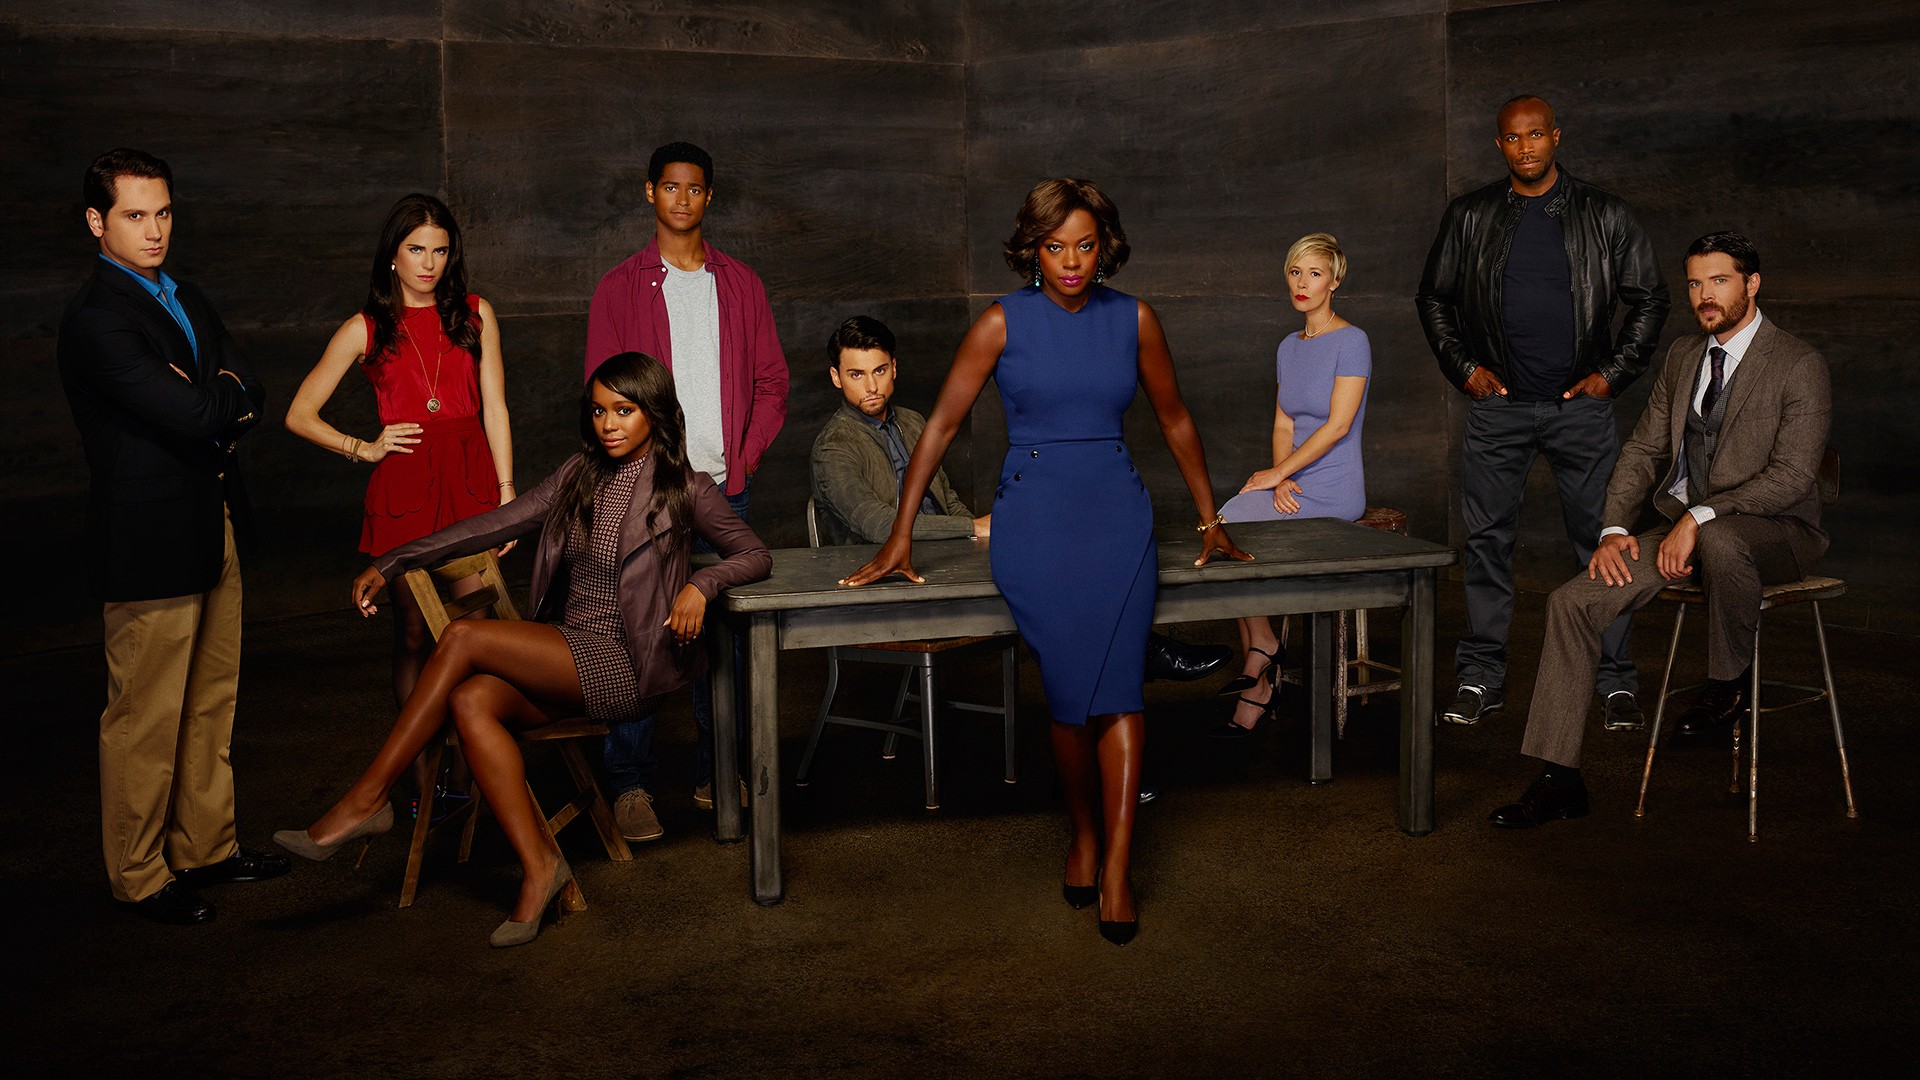 episode guide how to get away with a murderer